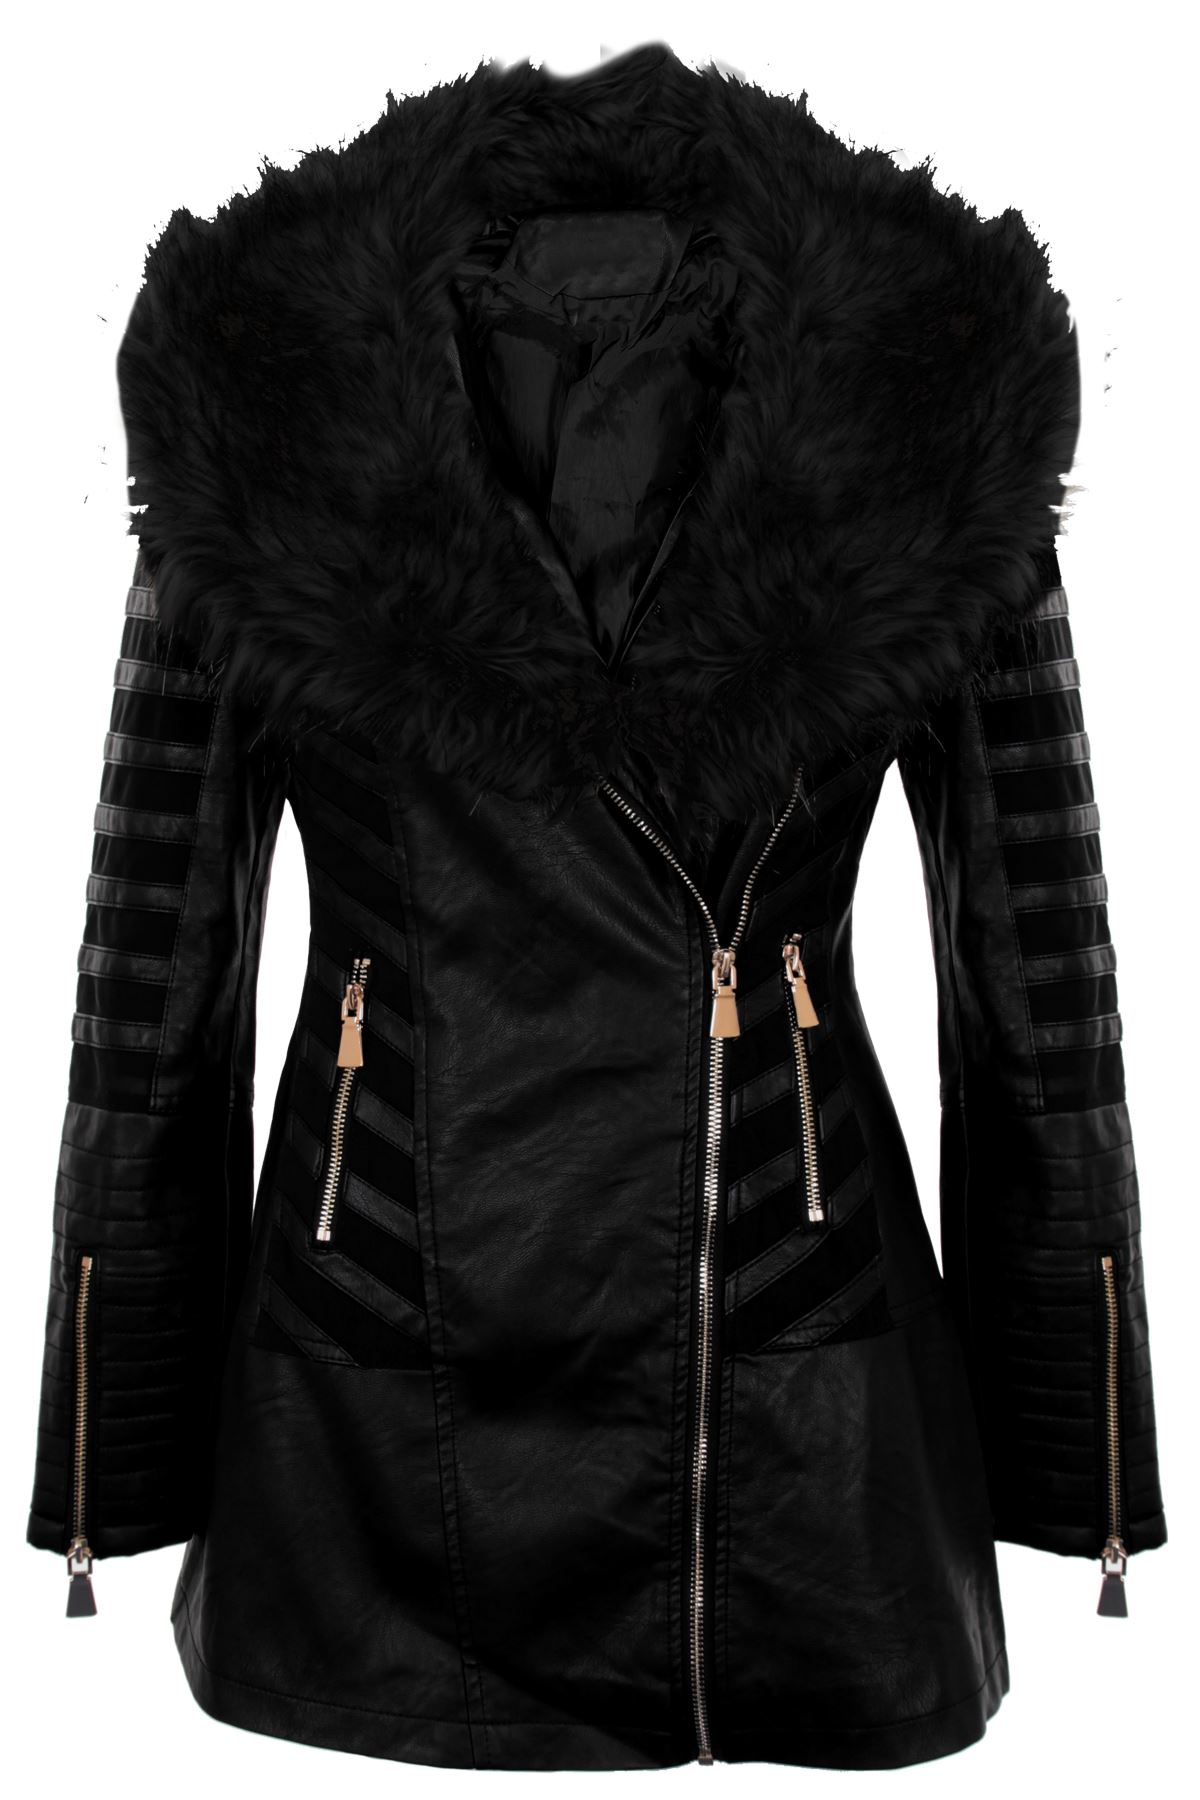 Ladies Faux Pvc Leather Fur Collar Mesh Insert Long Pu Zipper Coat